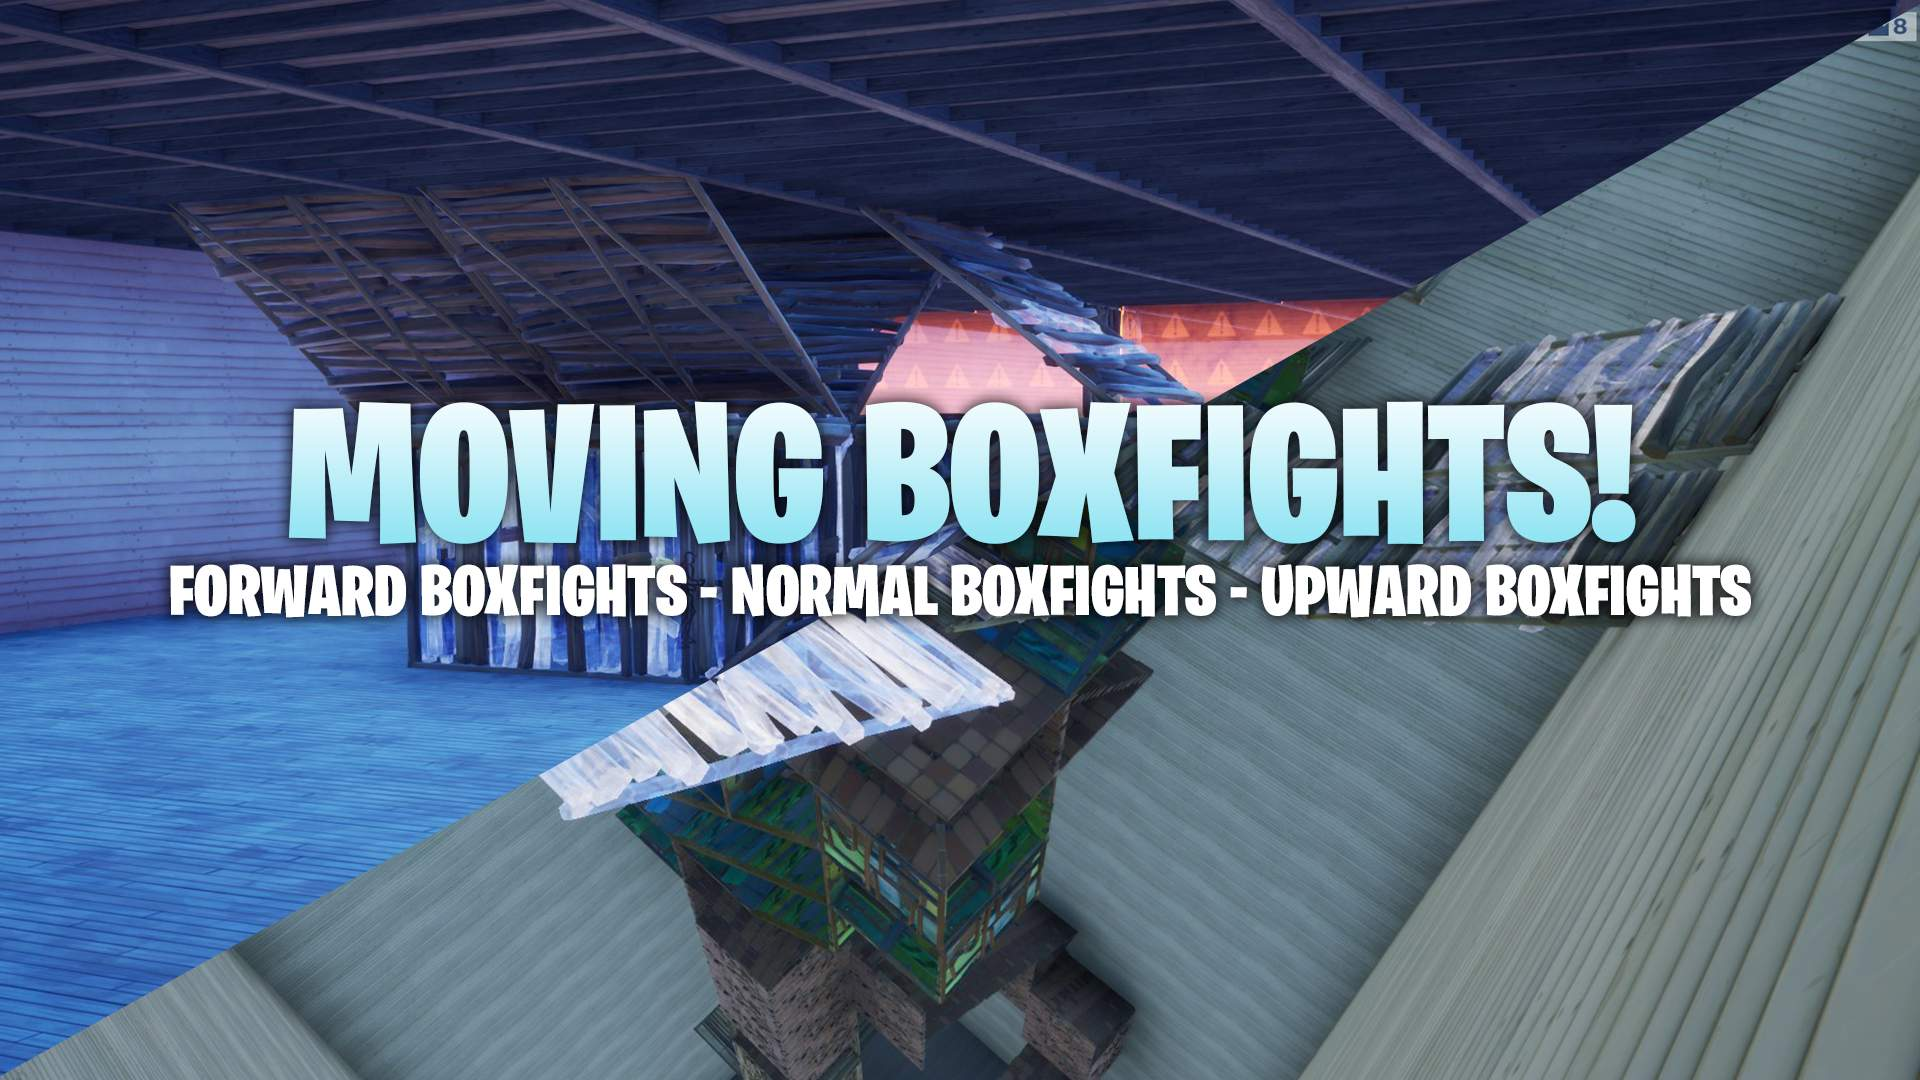 MOVING BOXFIGHTS!